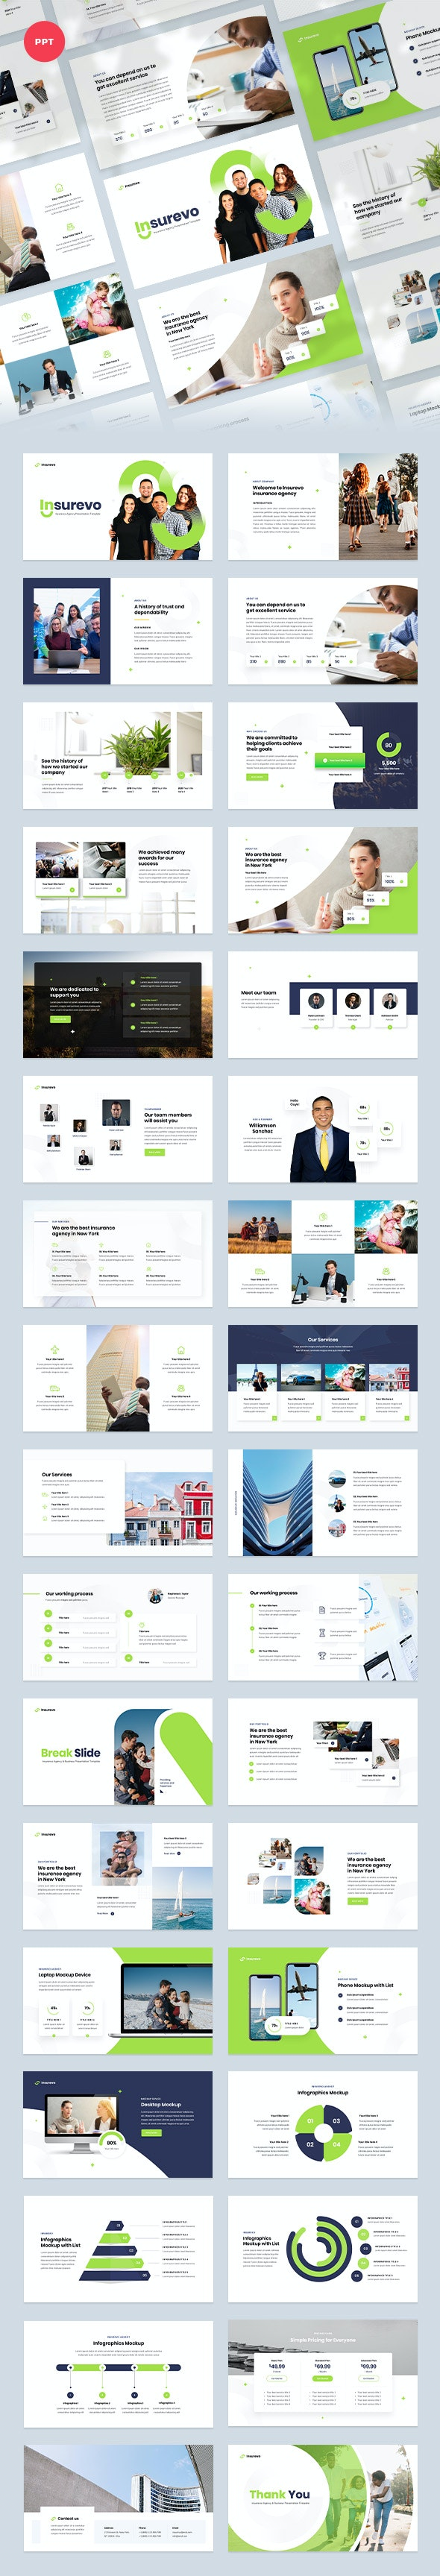 Insurance Agency PowerPoint Template - Business PowerPoint Templates